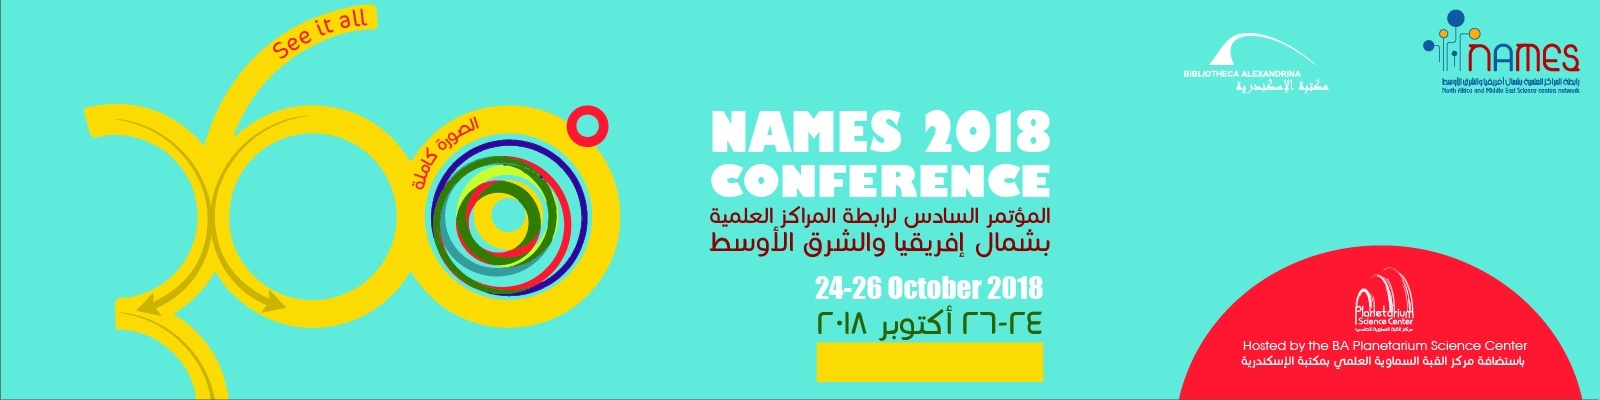 NAMES 2018 Conference